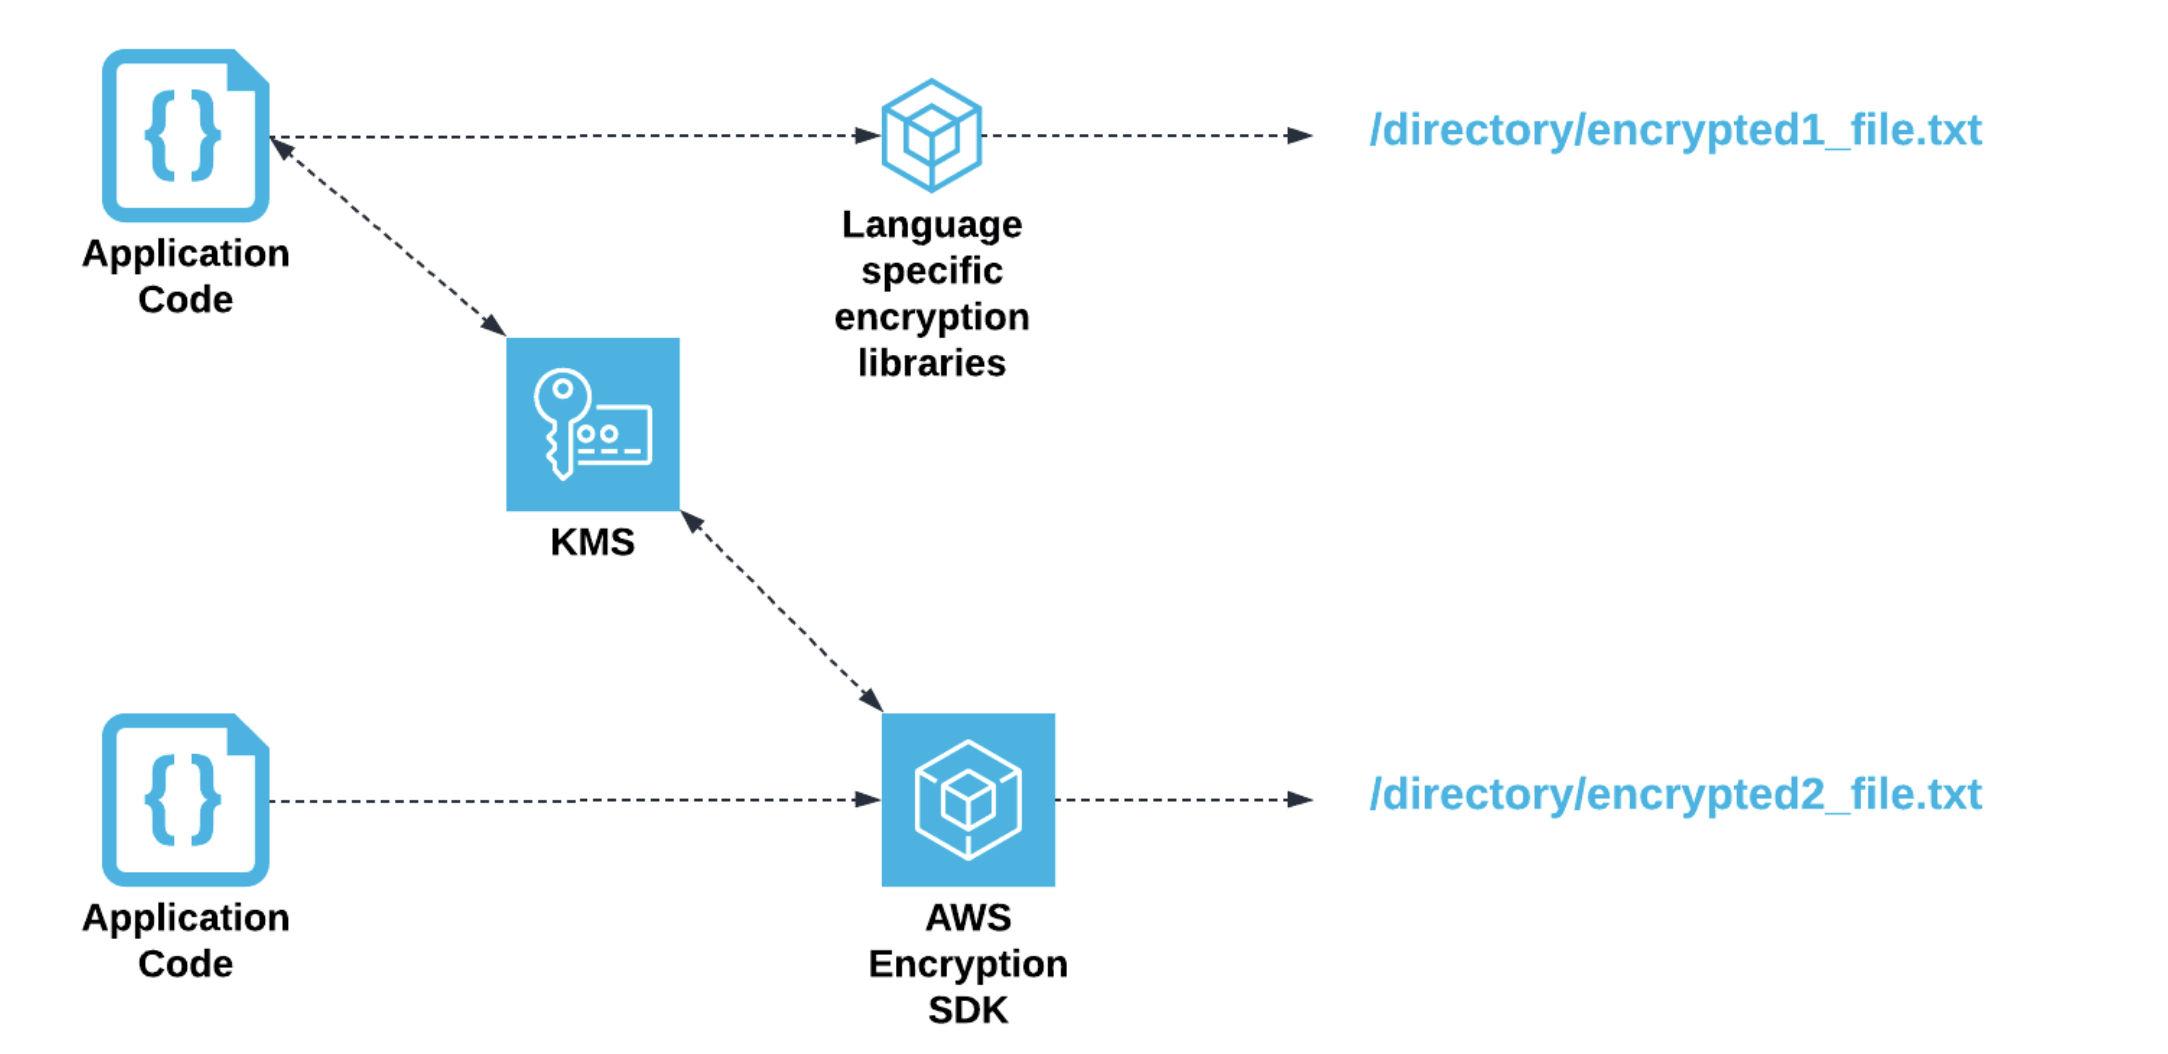 Application code can leverage KMS keys to use the AWS encryption SDK or language specific encryption libraries to encrypt files prior to writing to disk.